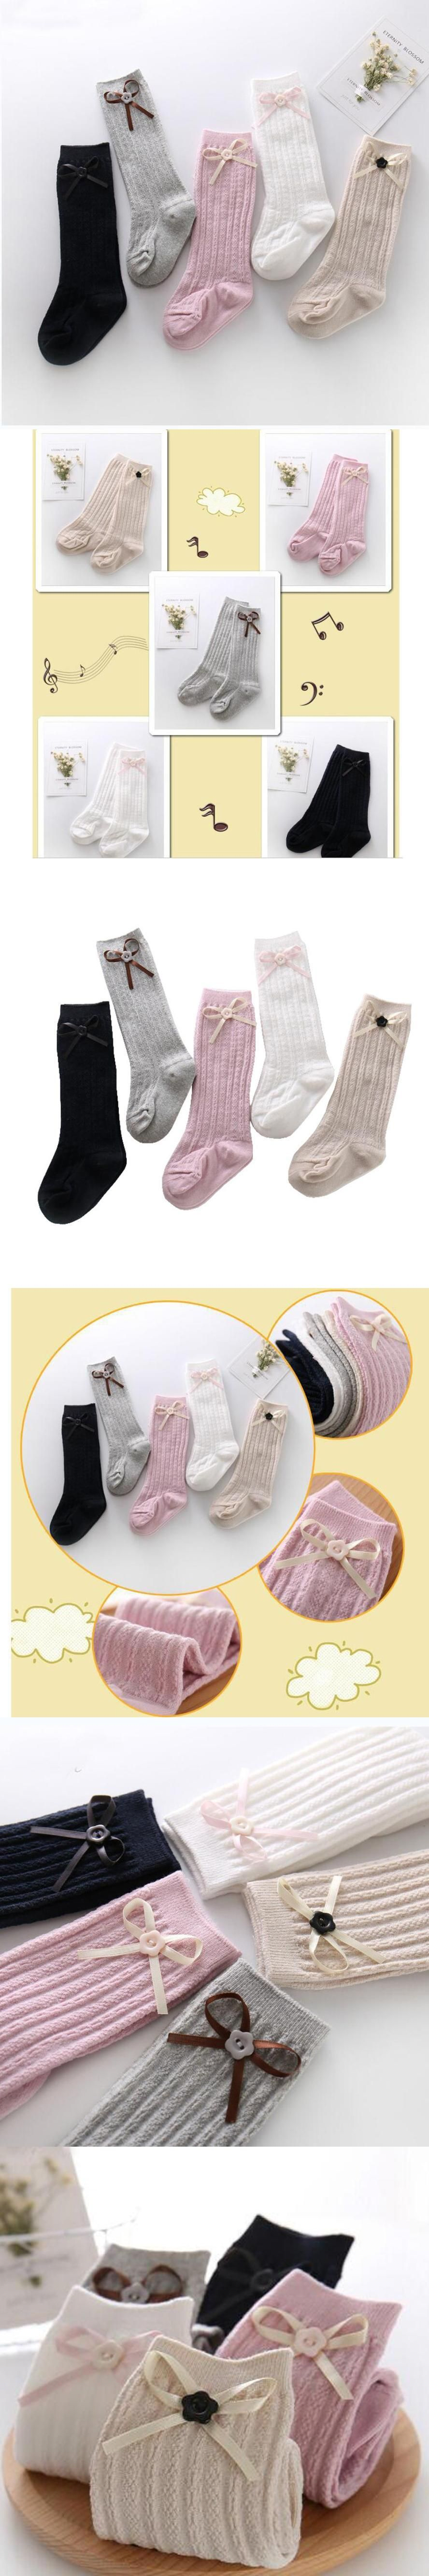 5Colors 5Pairs Knee High Cable Knit Cotton Sock Newborn Baby Girl